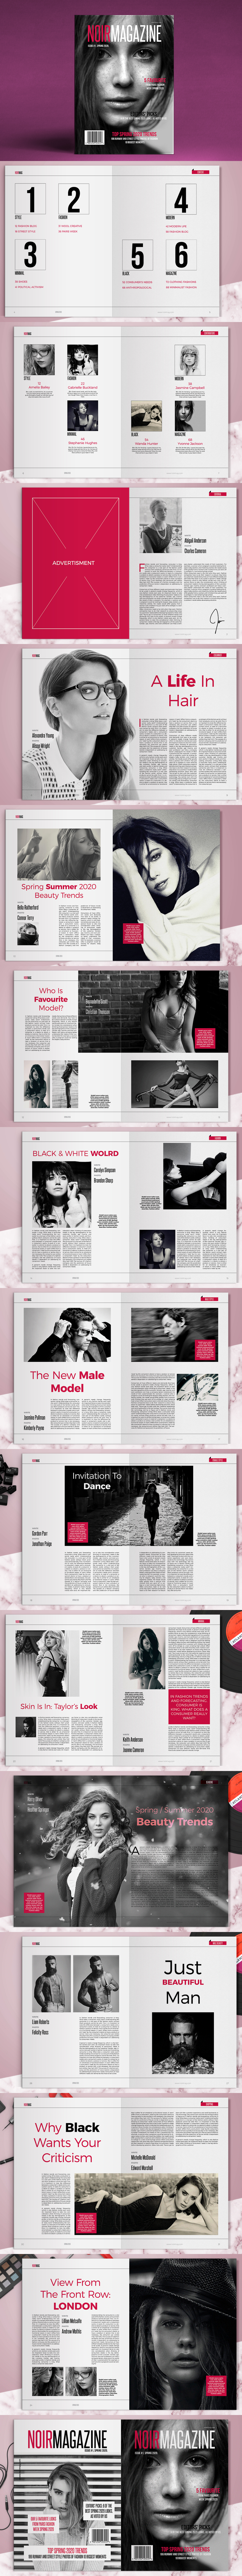 Beautiful Grayscale Fashion Magazine Template InDesign INDD - 36 ...